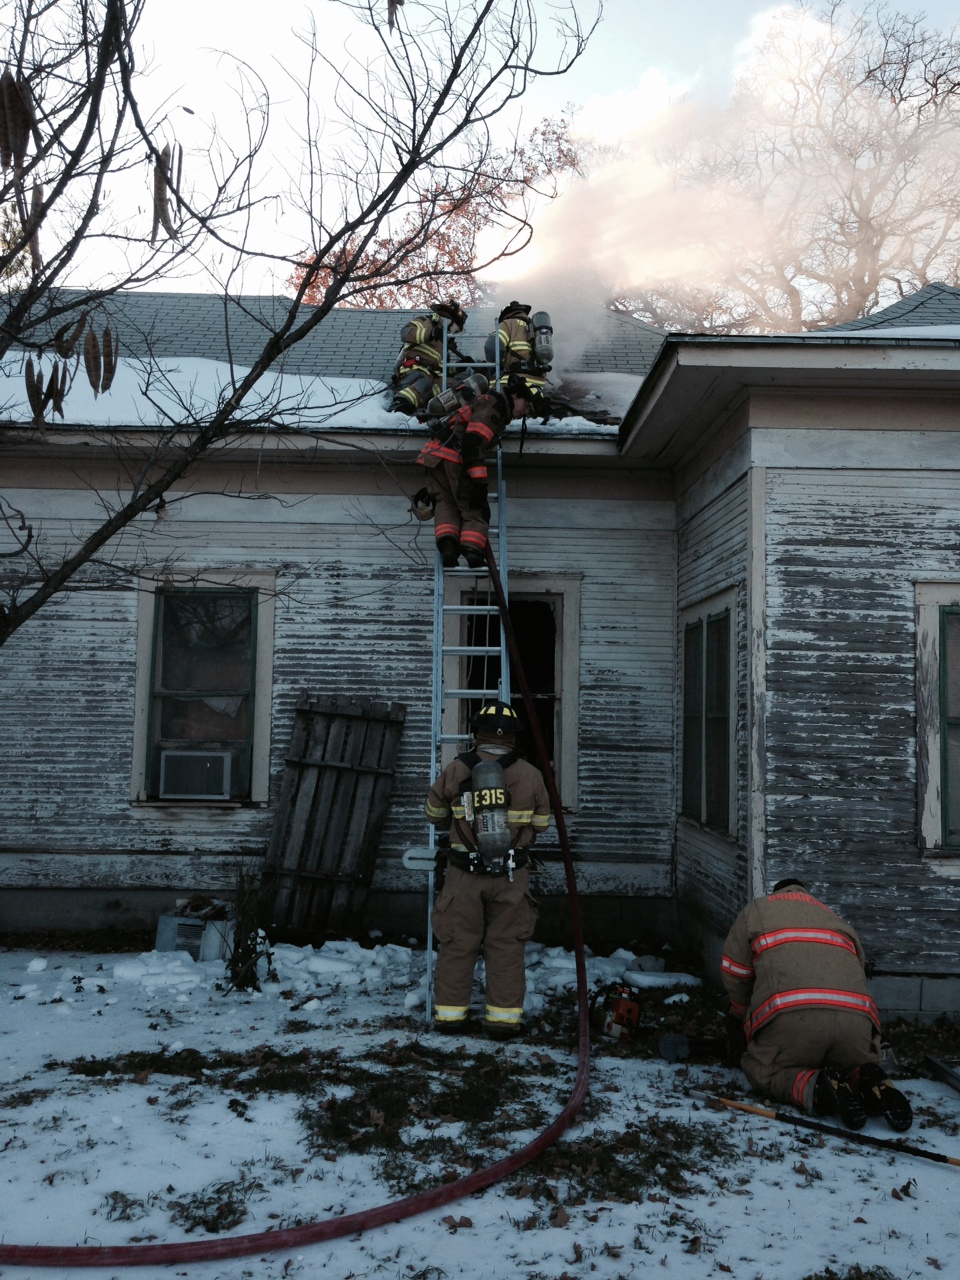 Bridgeport firefighters make access to an attic to attack a house fire Tuesday afternoon west of Bridgeport. Photo by Joe Duty.